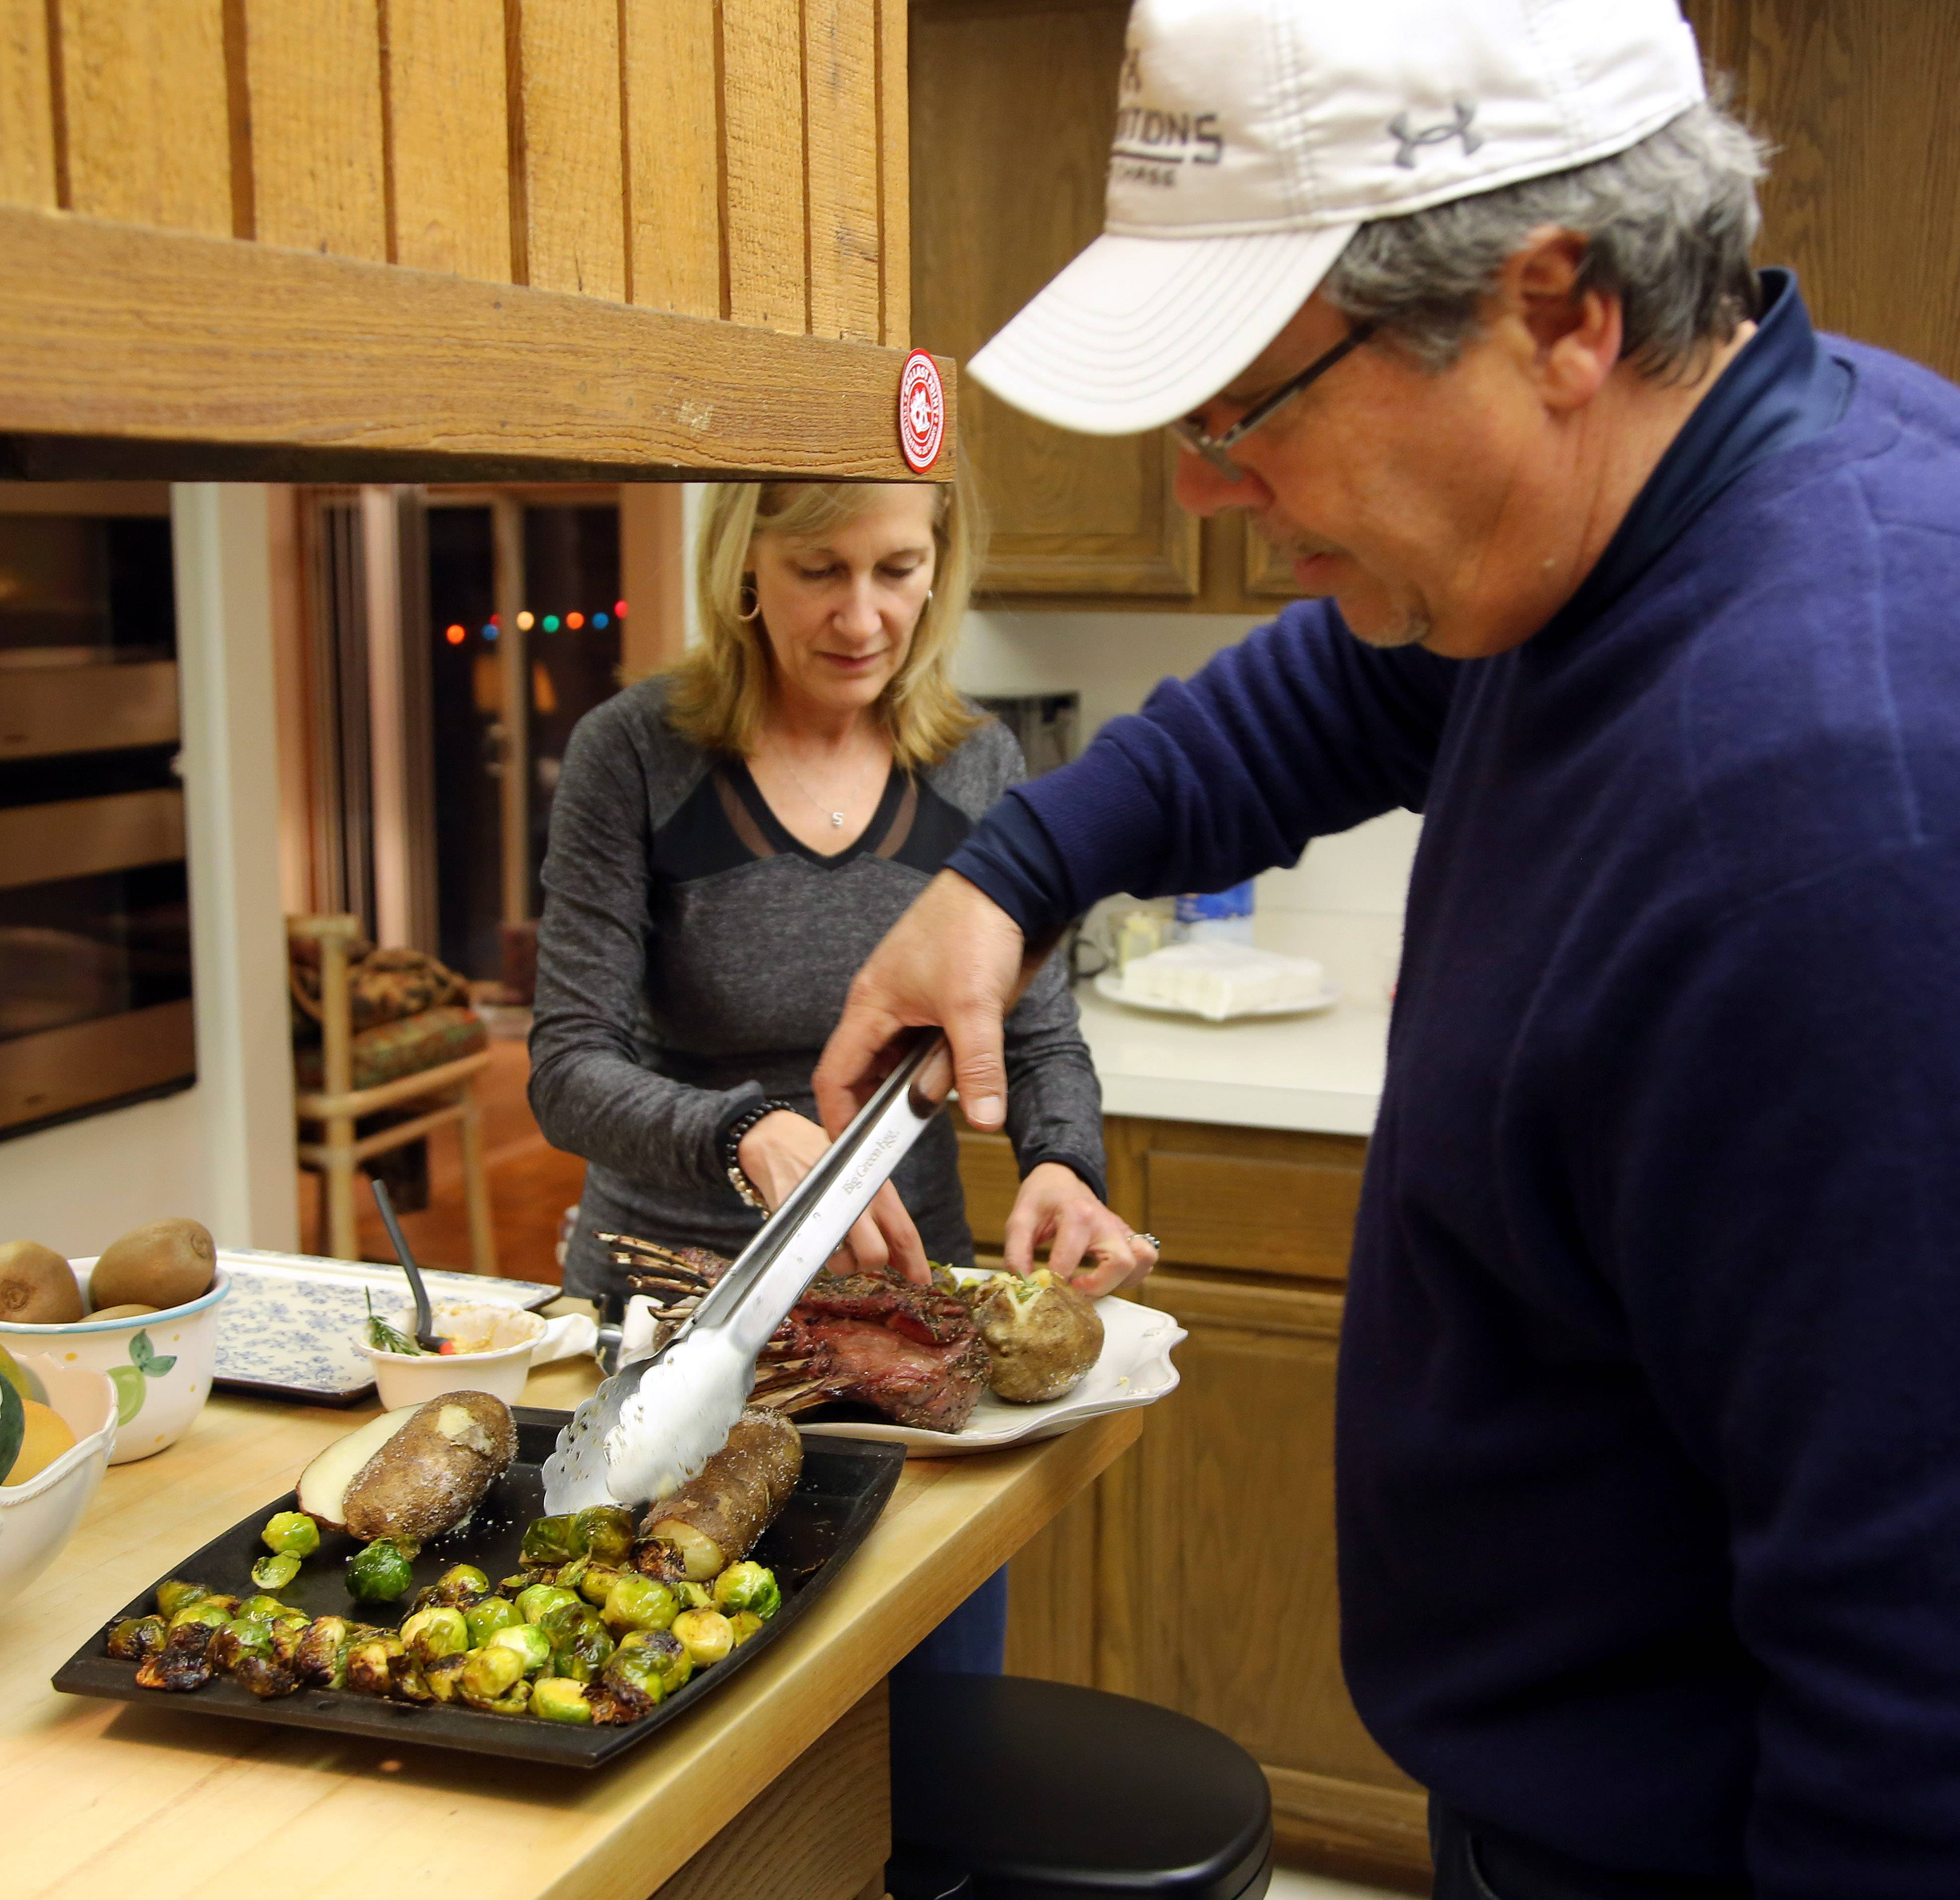 Cooks of the Week of John Harty, right, and Sue Ascher of Riverwoods plate rack of lamb with roasted Brussels sprouts and baked potato. They use their kitchen for prep work but all the food is cooked outdoors.